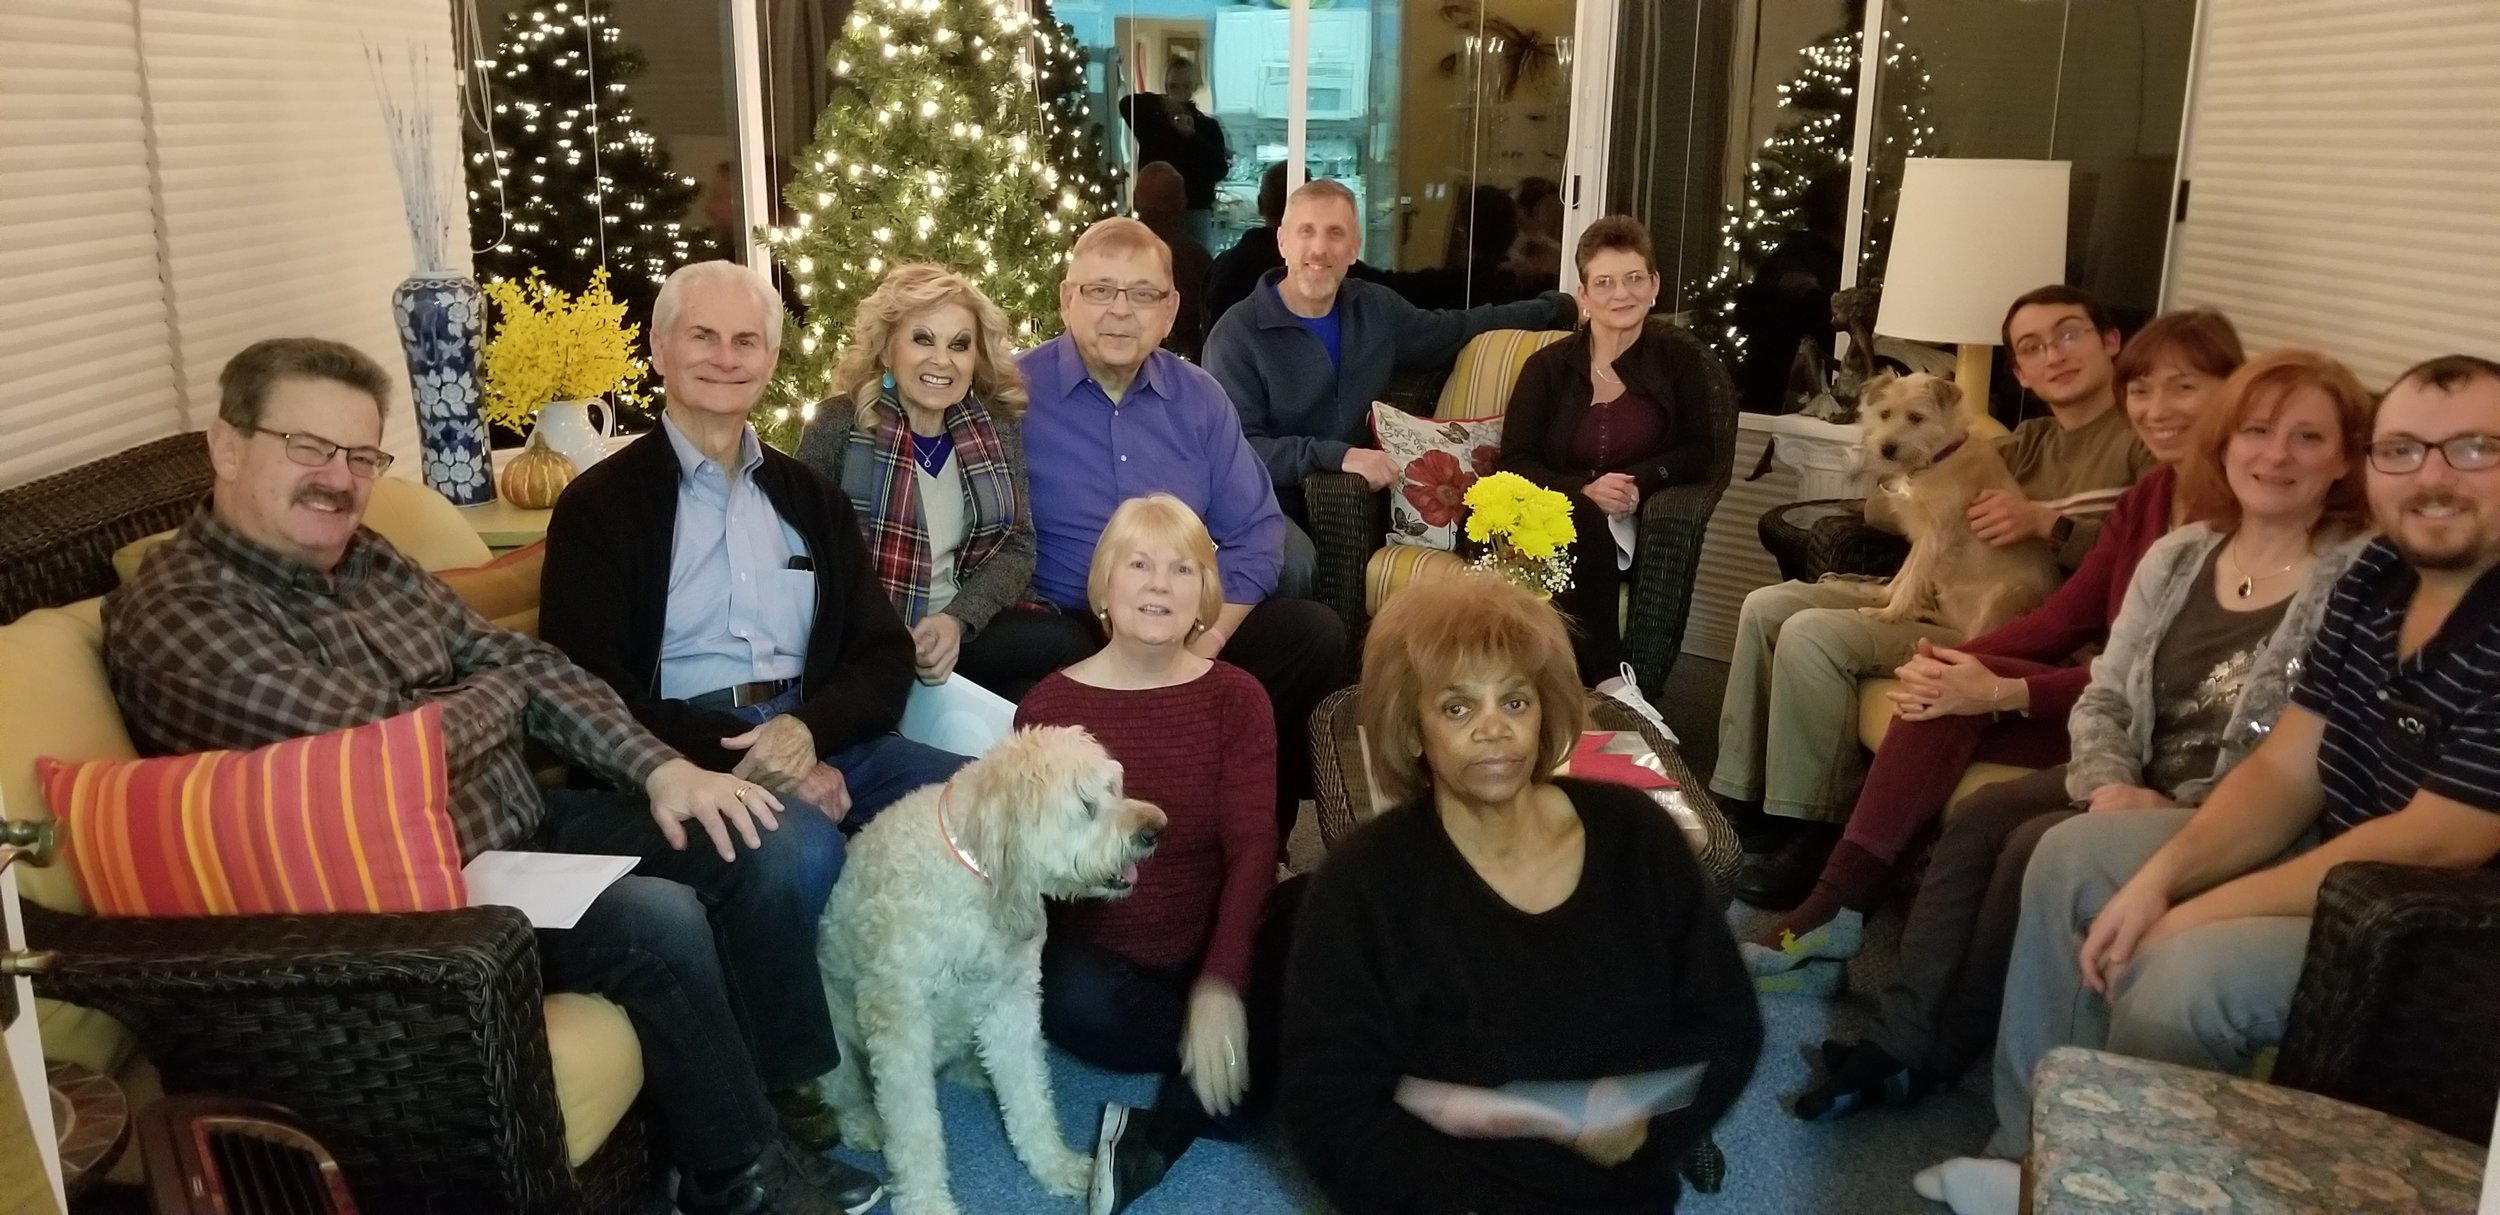 West Bloomfield small Group nov 24th 2017.jpg